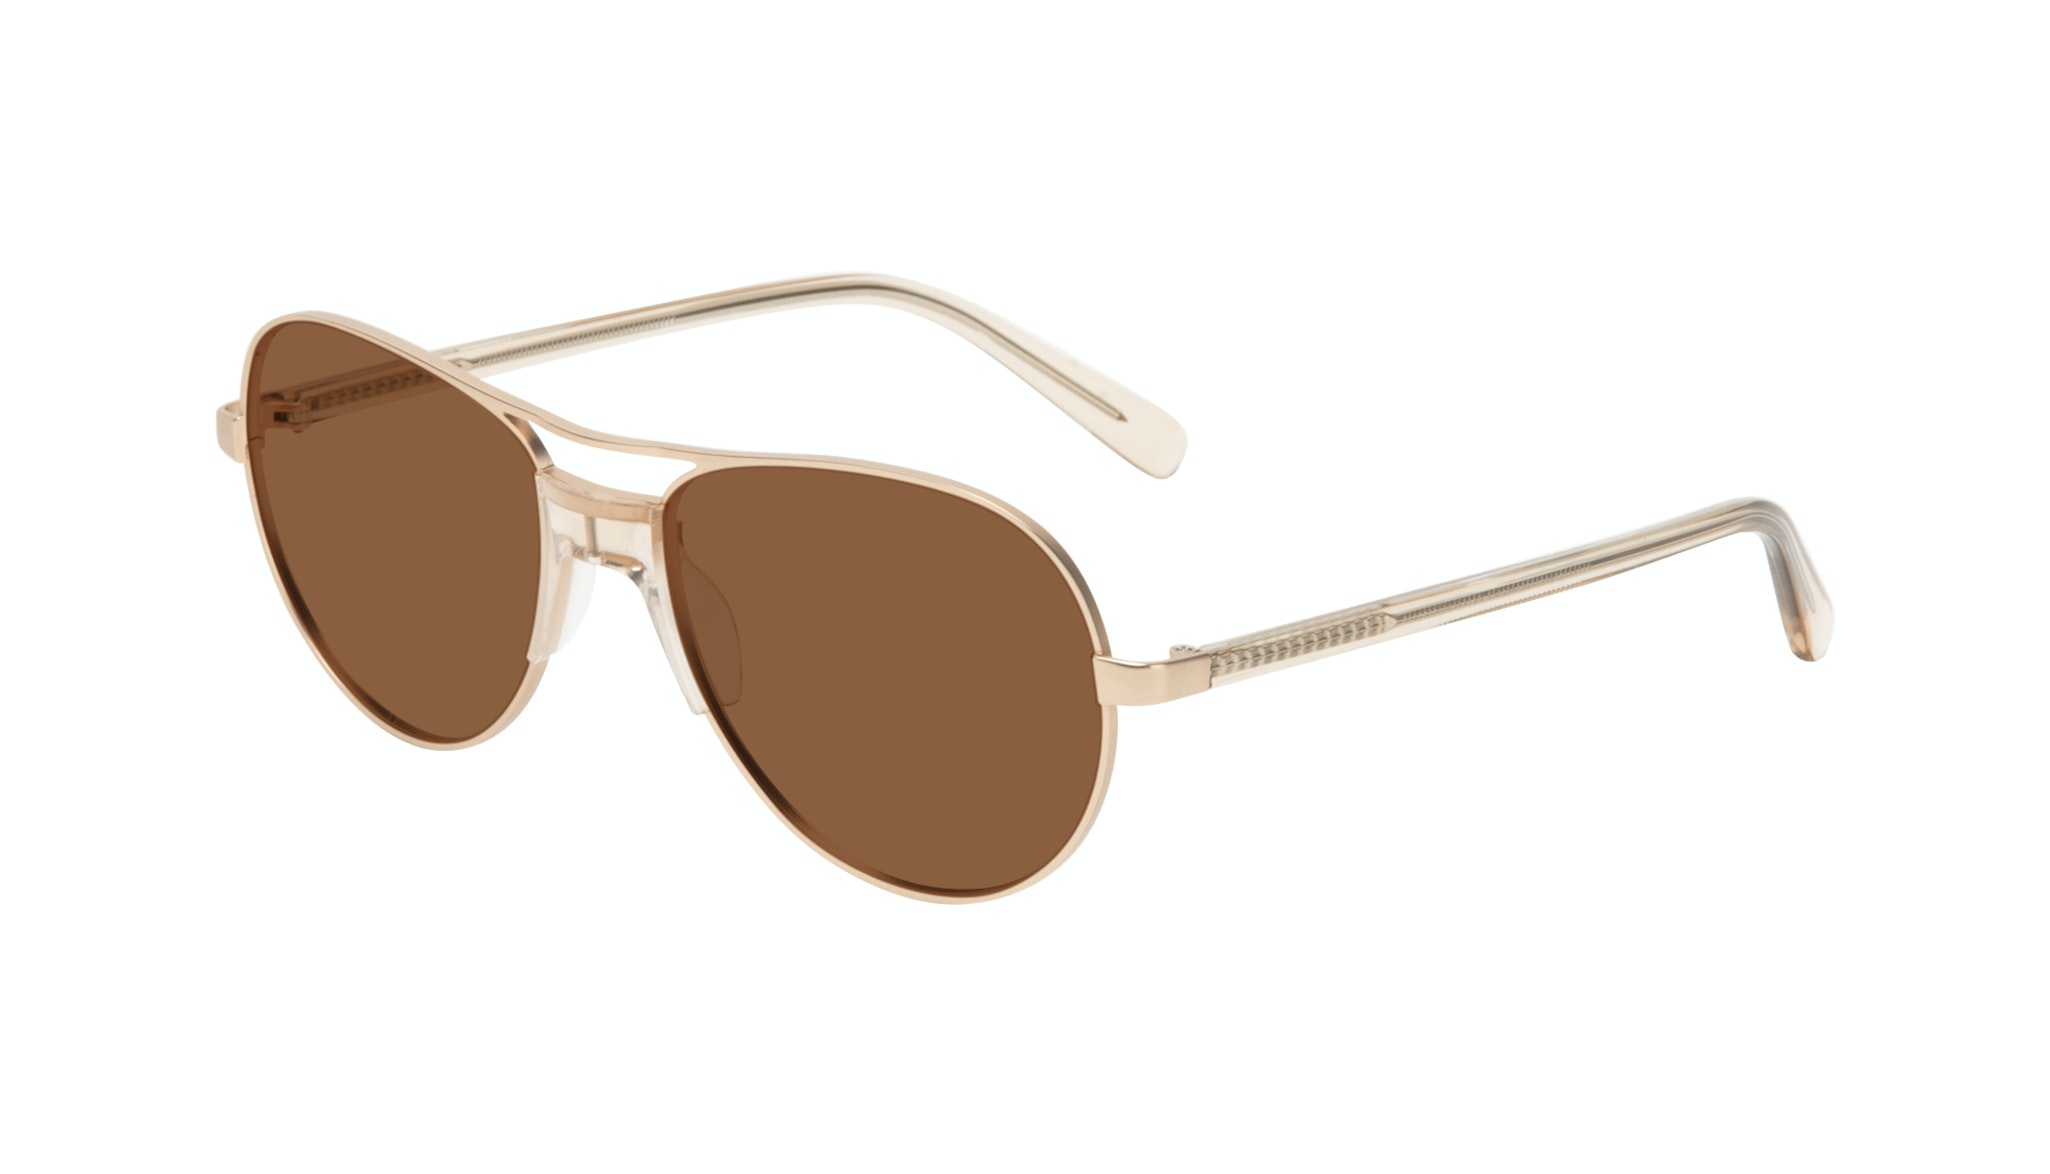 Affordable Fashion Glasses Aviator Sunglasses Women Ultimate Gold Tilt